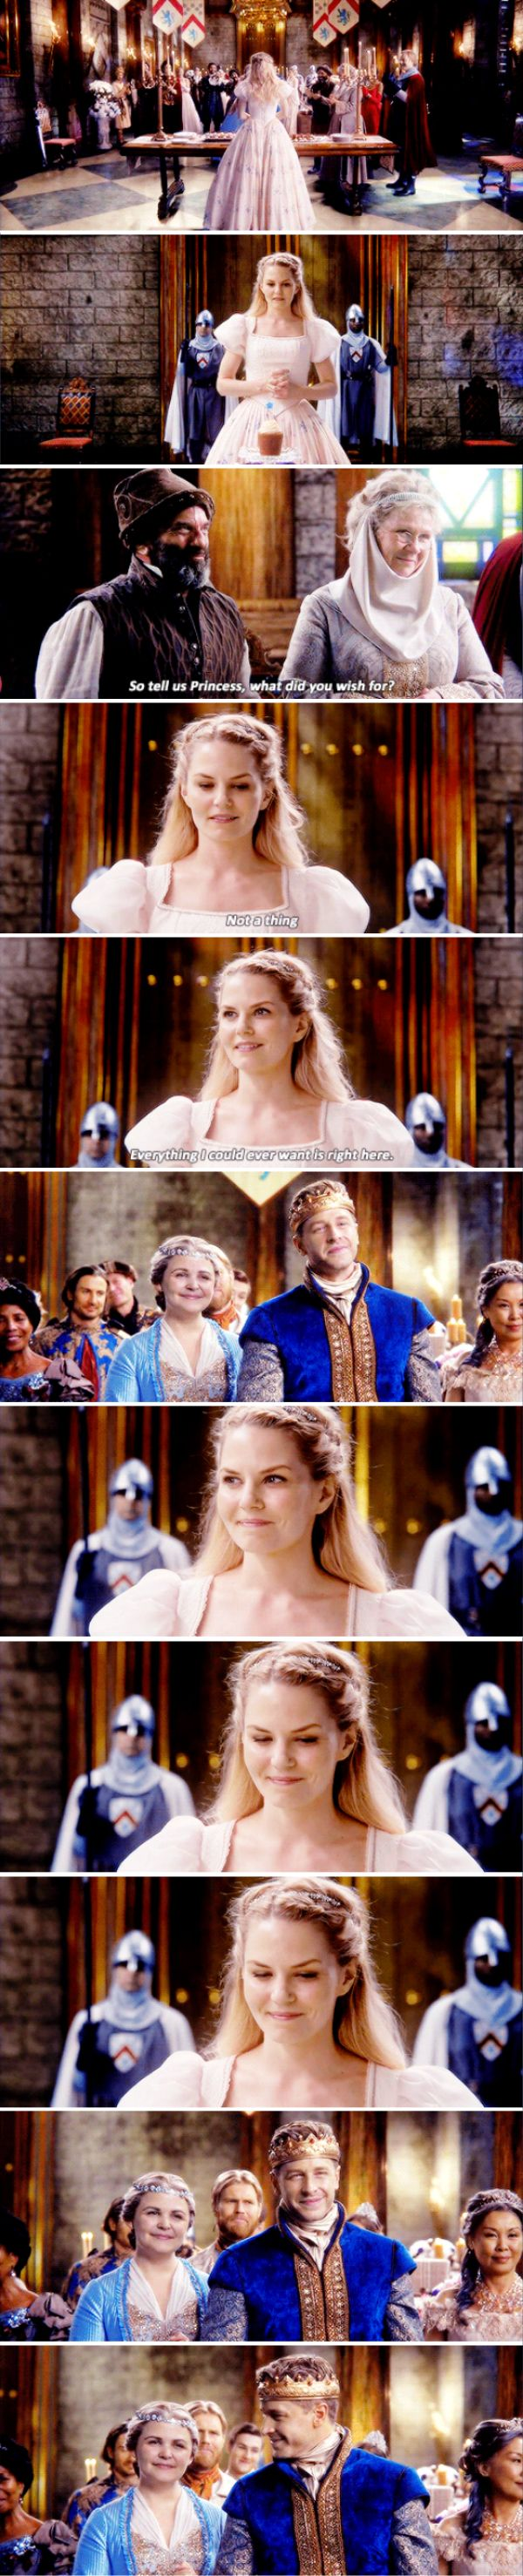 Emma, Leroy, Granny, Snow White and David - 6*10 ~ Wish You Were Here